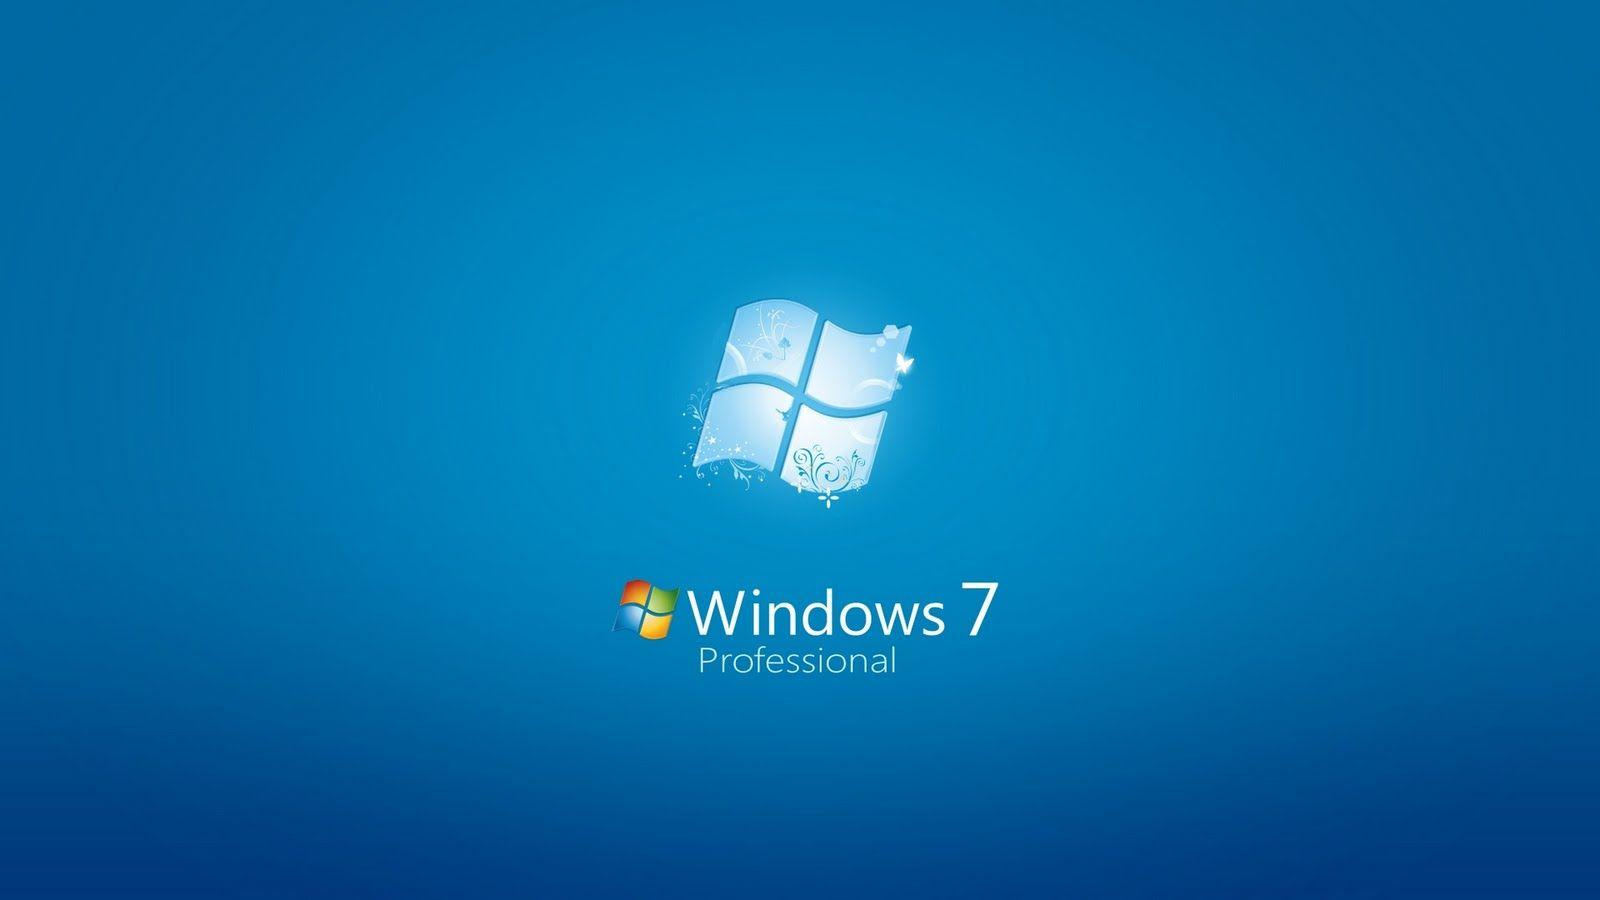 Free Wallpapers 1920x1080 HDTV: Windows 7 Professional